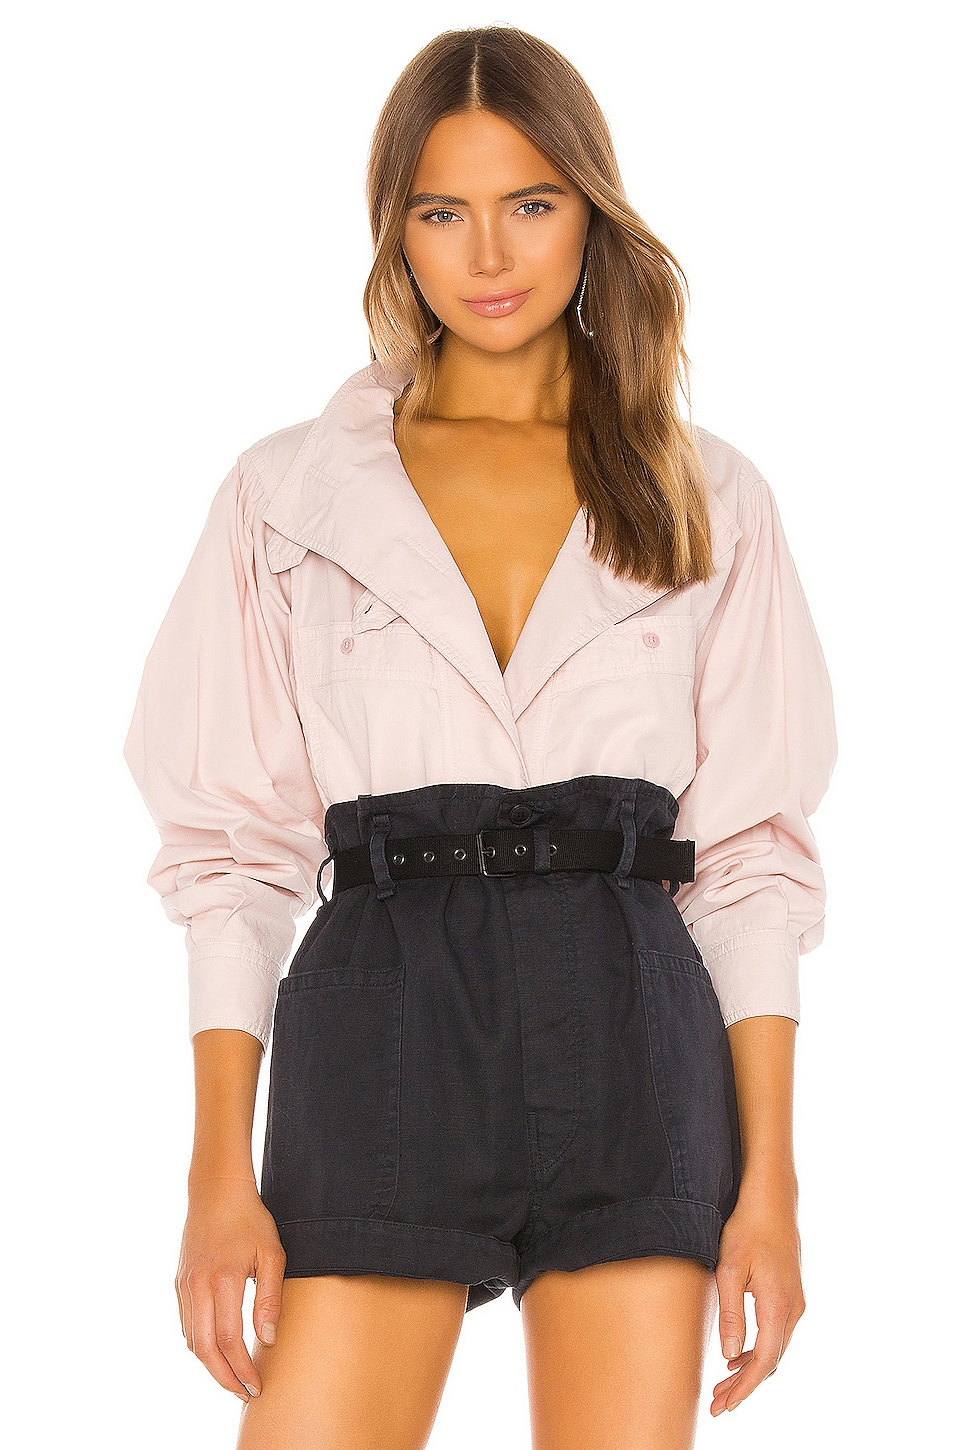 Isabel Marant Etoile Mahonia Blouse in Light Pink